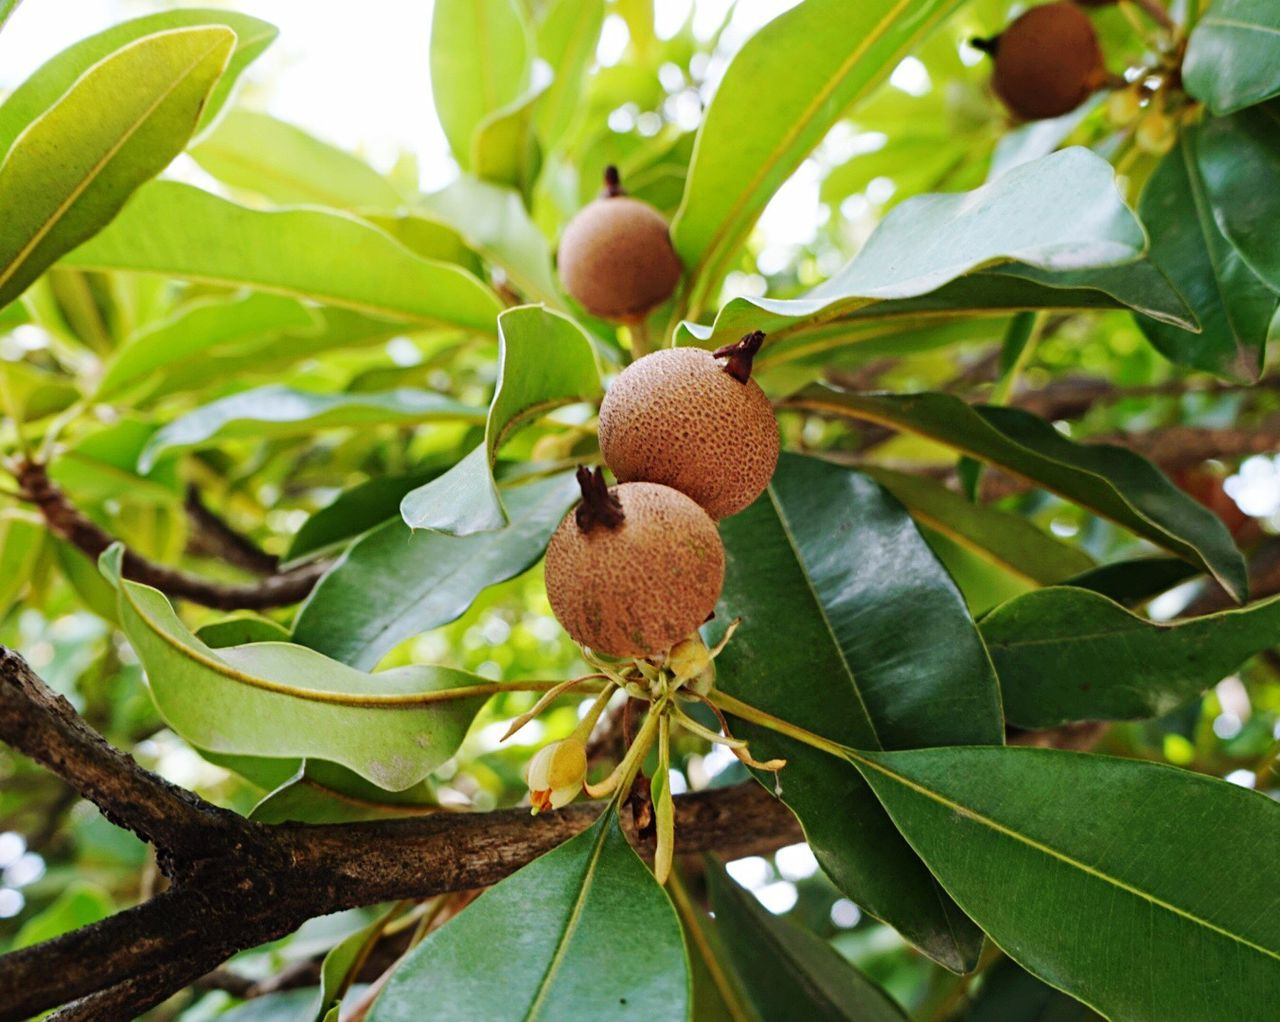 Manilkara zapota Fruit Exotic Fruits Fruits And Vegetables Fruits Photography